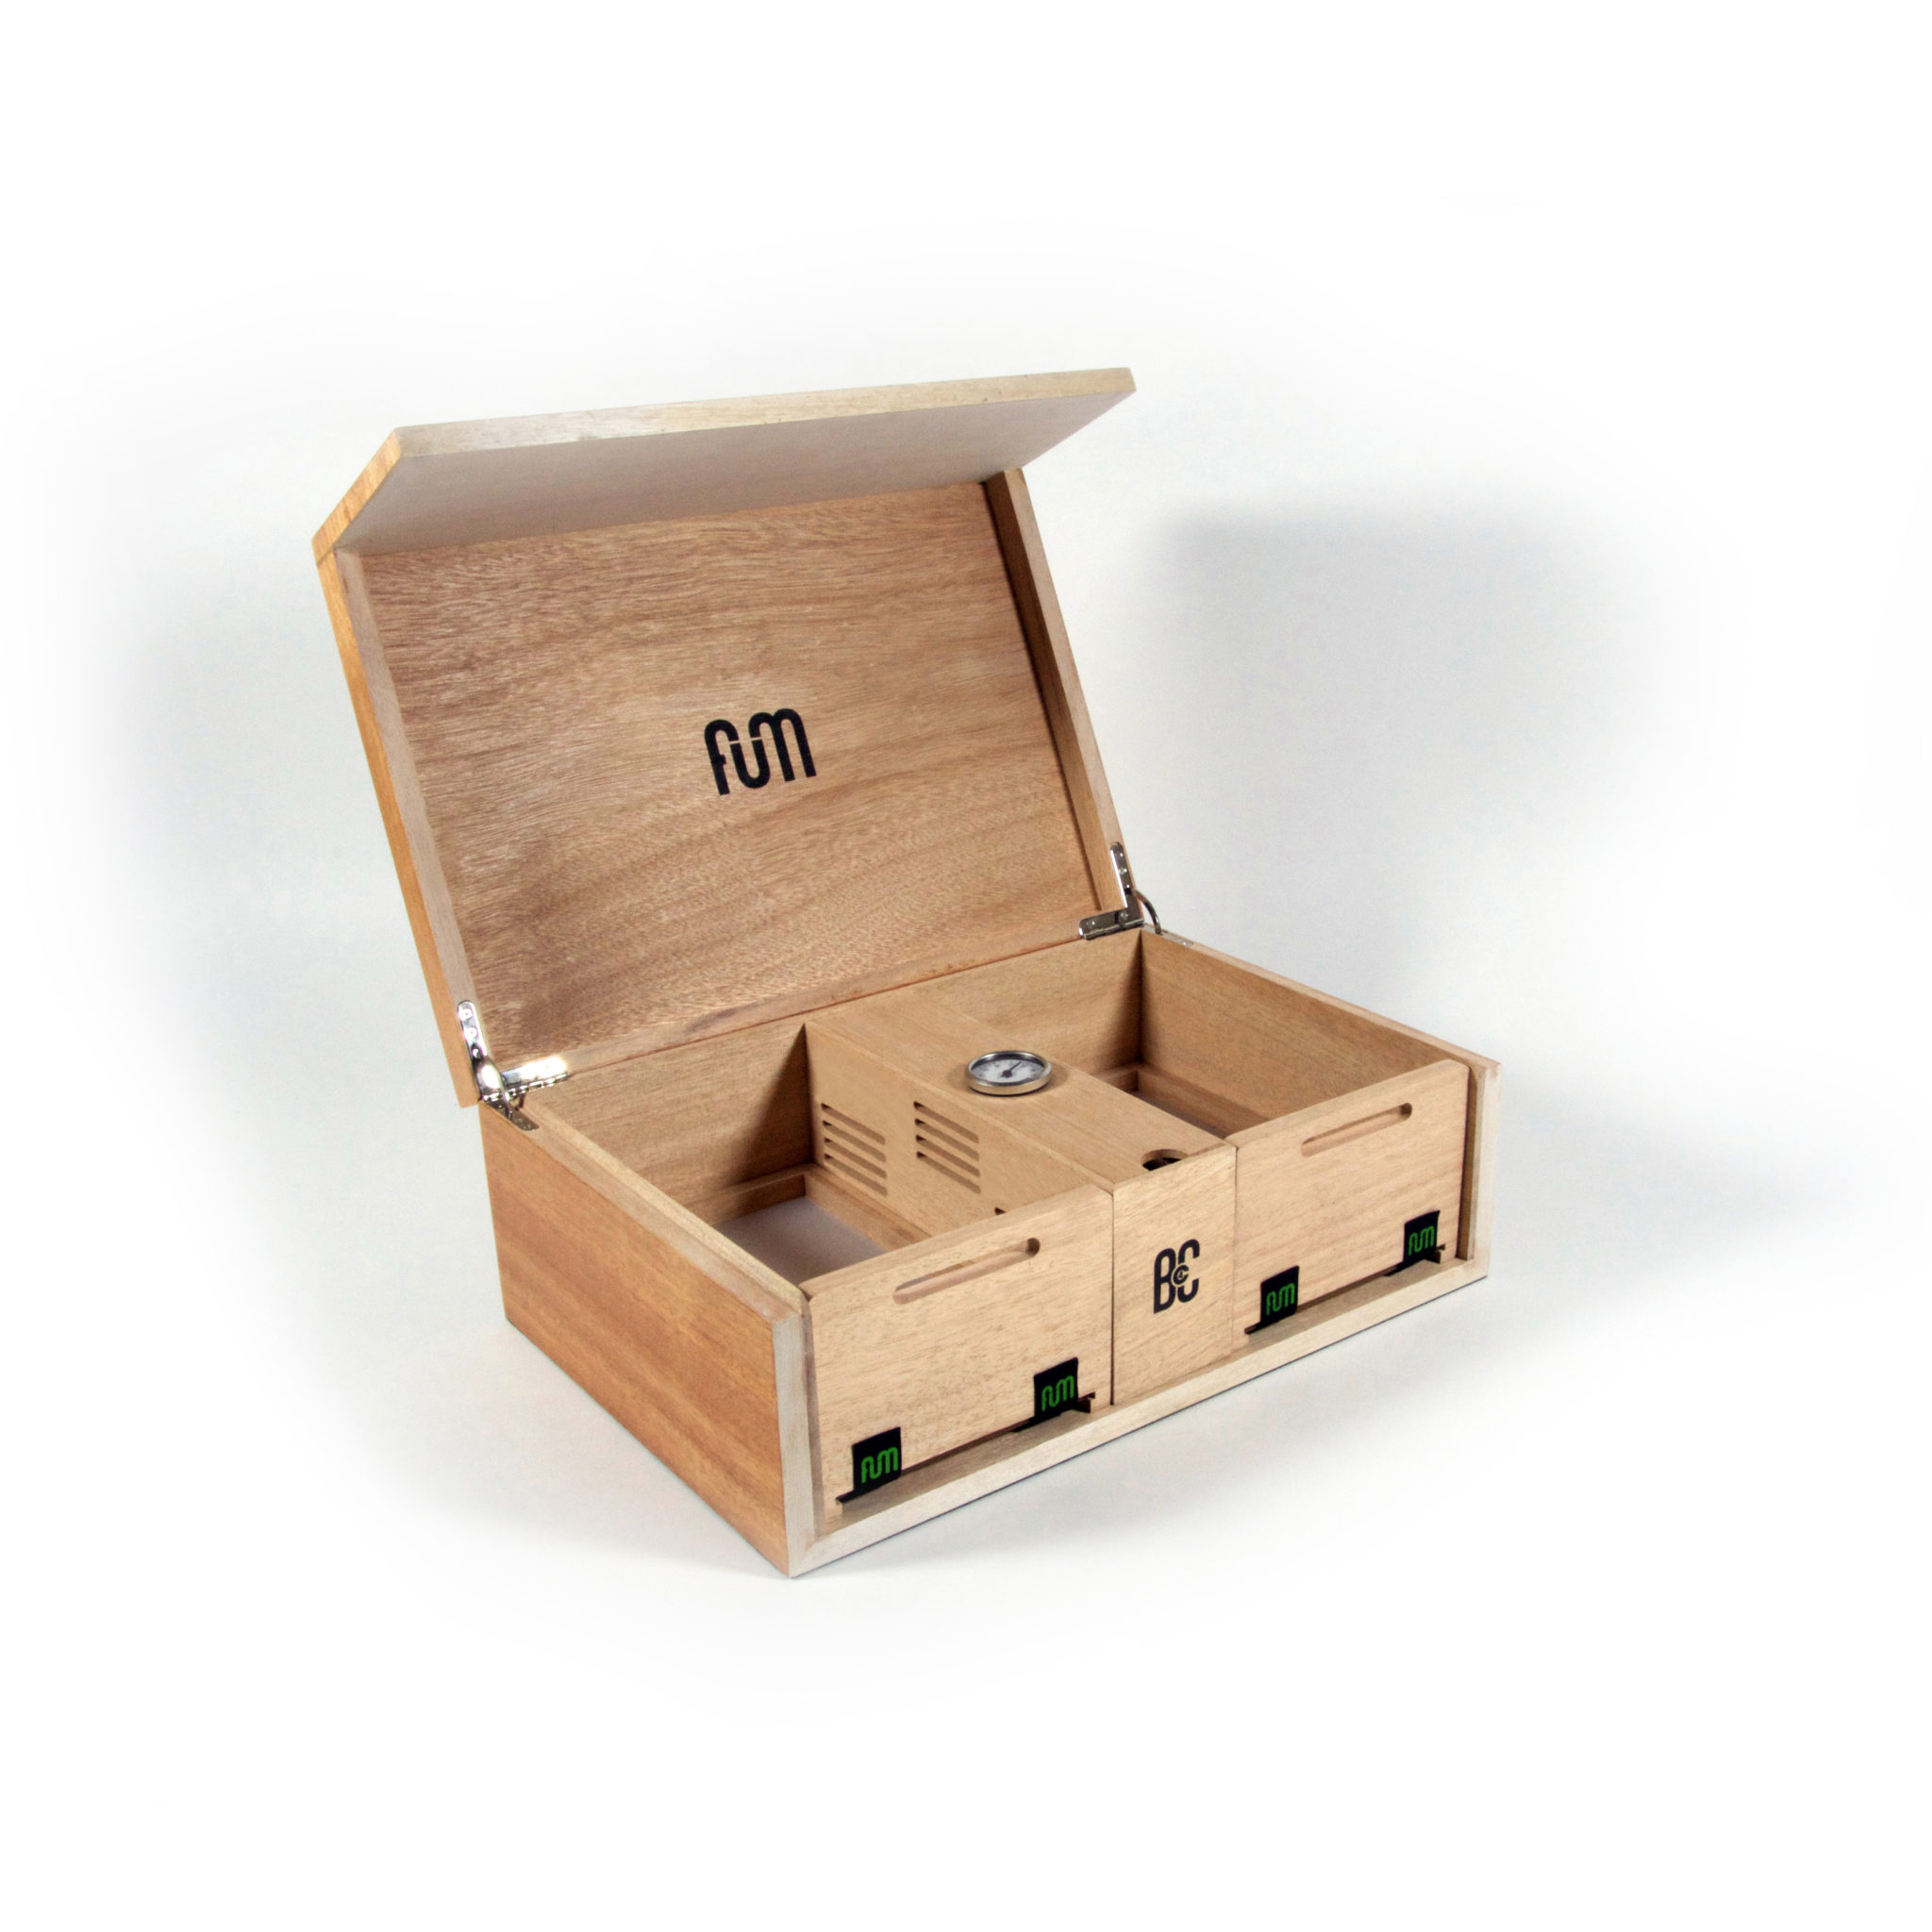 Okume large B4CC is a solid wood desktop humidor specially designed for keeping the cannabis in optimum conditions due to its hermetic seal and interior humidity circulation system.